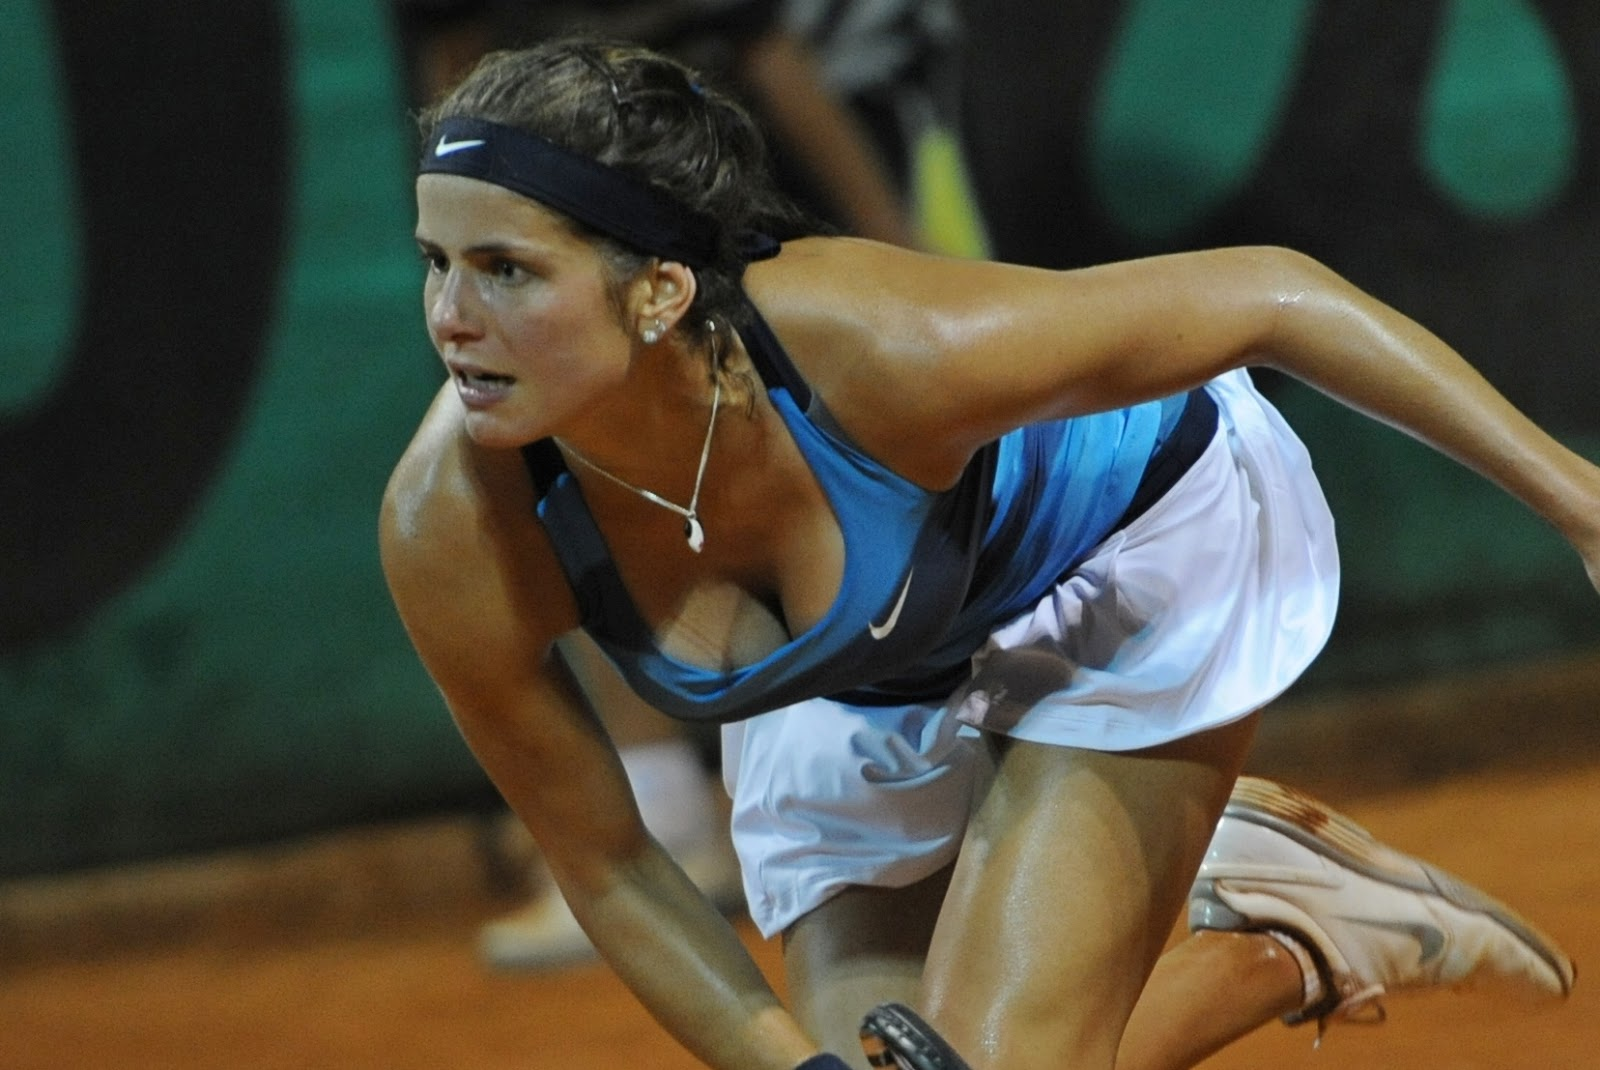 Famous Sports Personalities: Julia Goerges Hot 2013